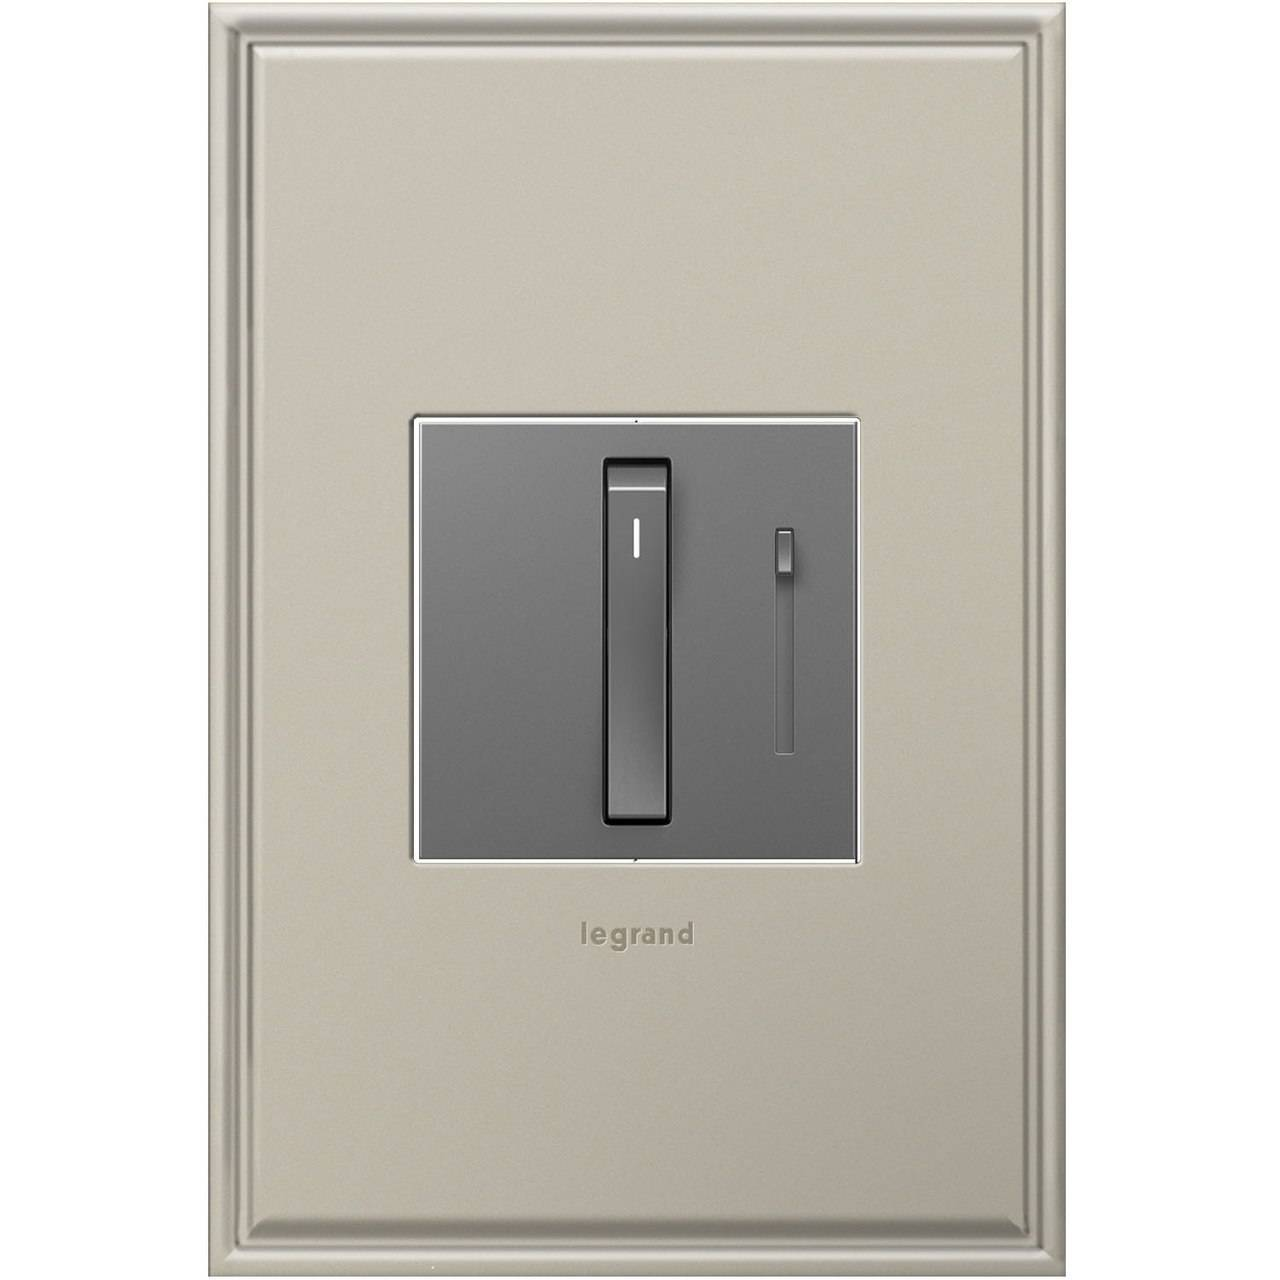 Legrand adorne wi-fi connected whisper master dimmer switch